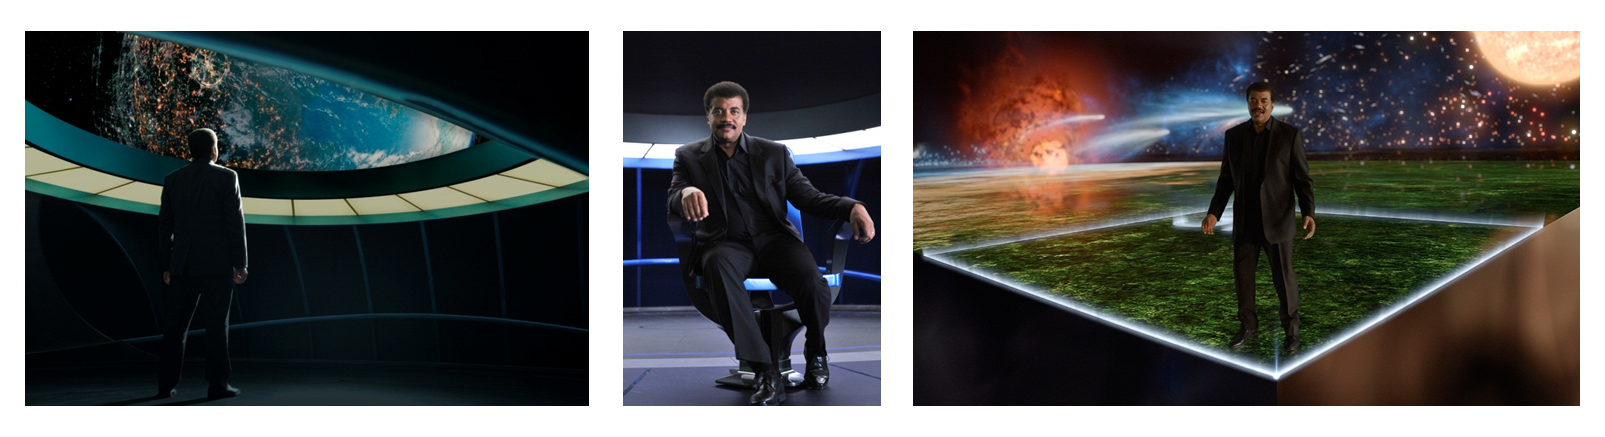 COSMOS: A SPACETIME ODYSSEY - Neil deGrasse Tyson, Host